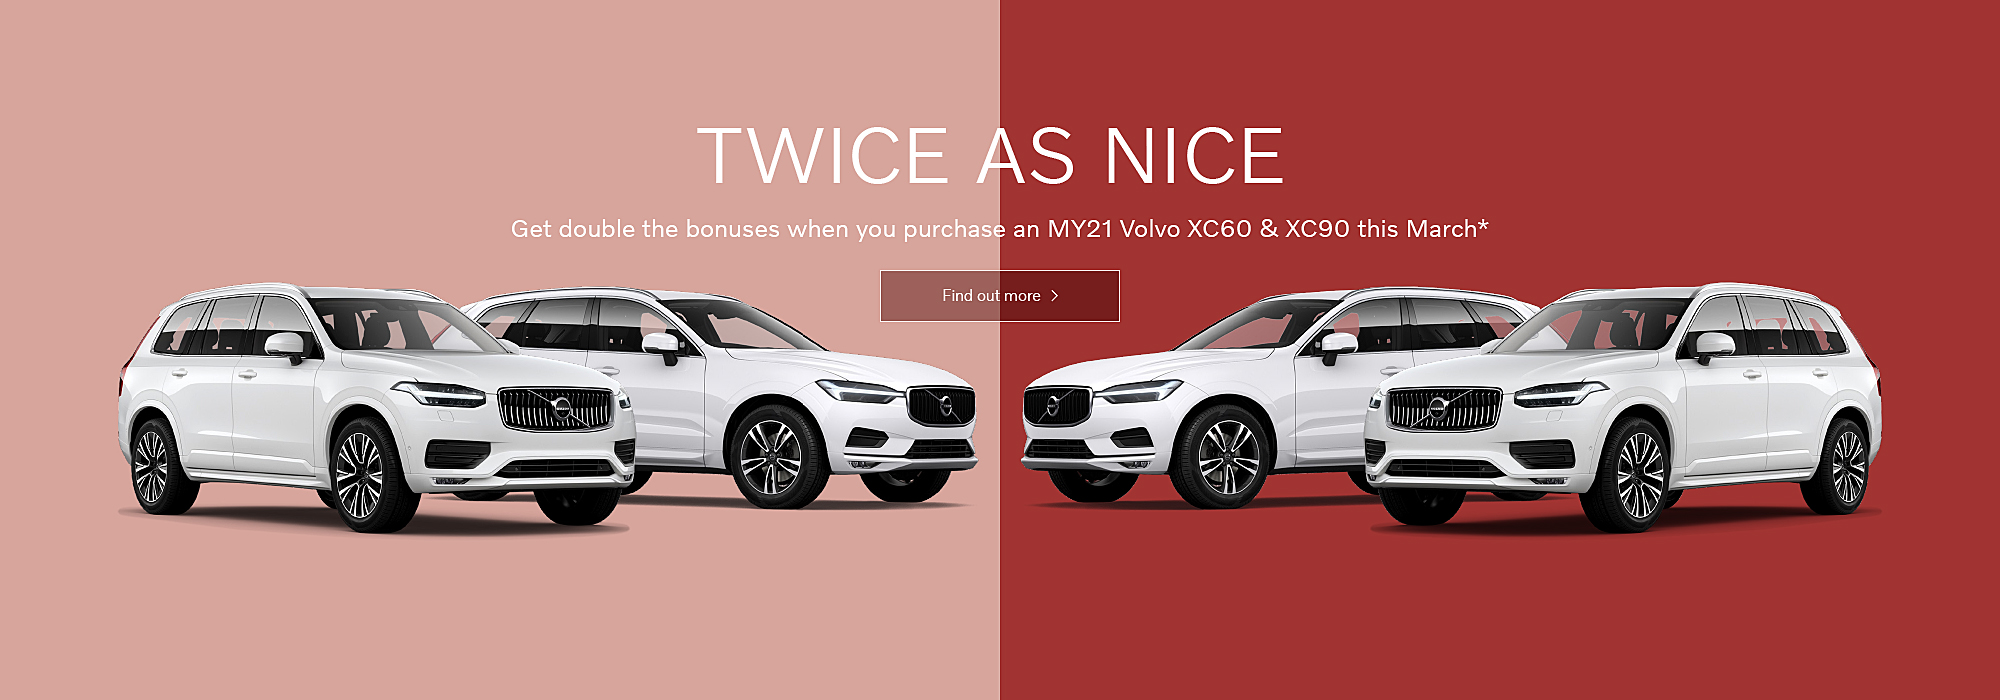 Twice as Nice on Volvo XC60 and Volvo XC90